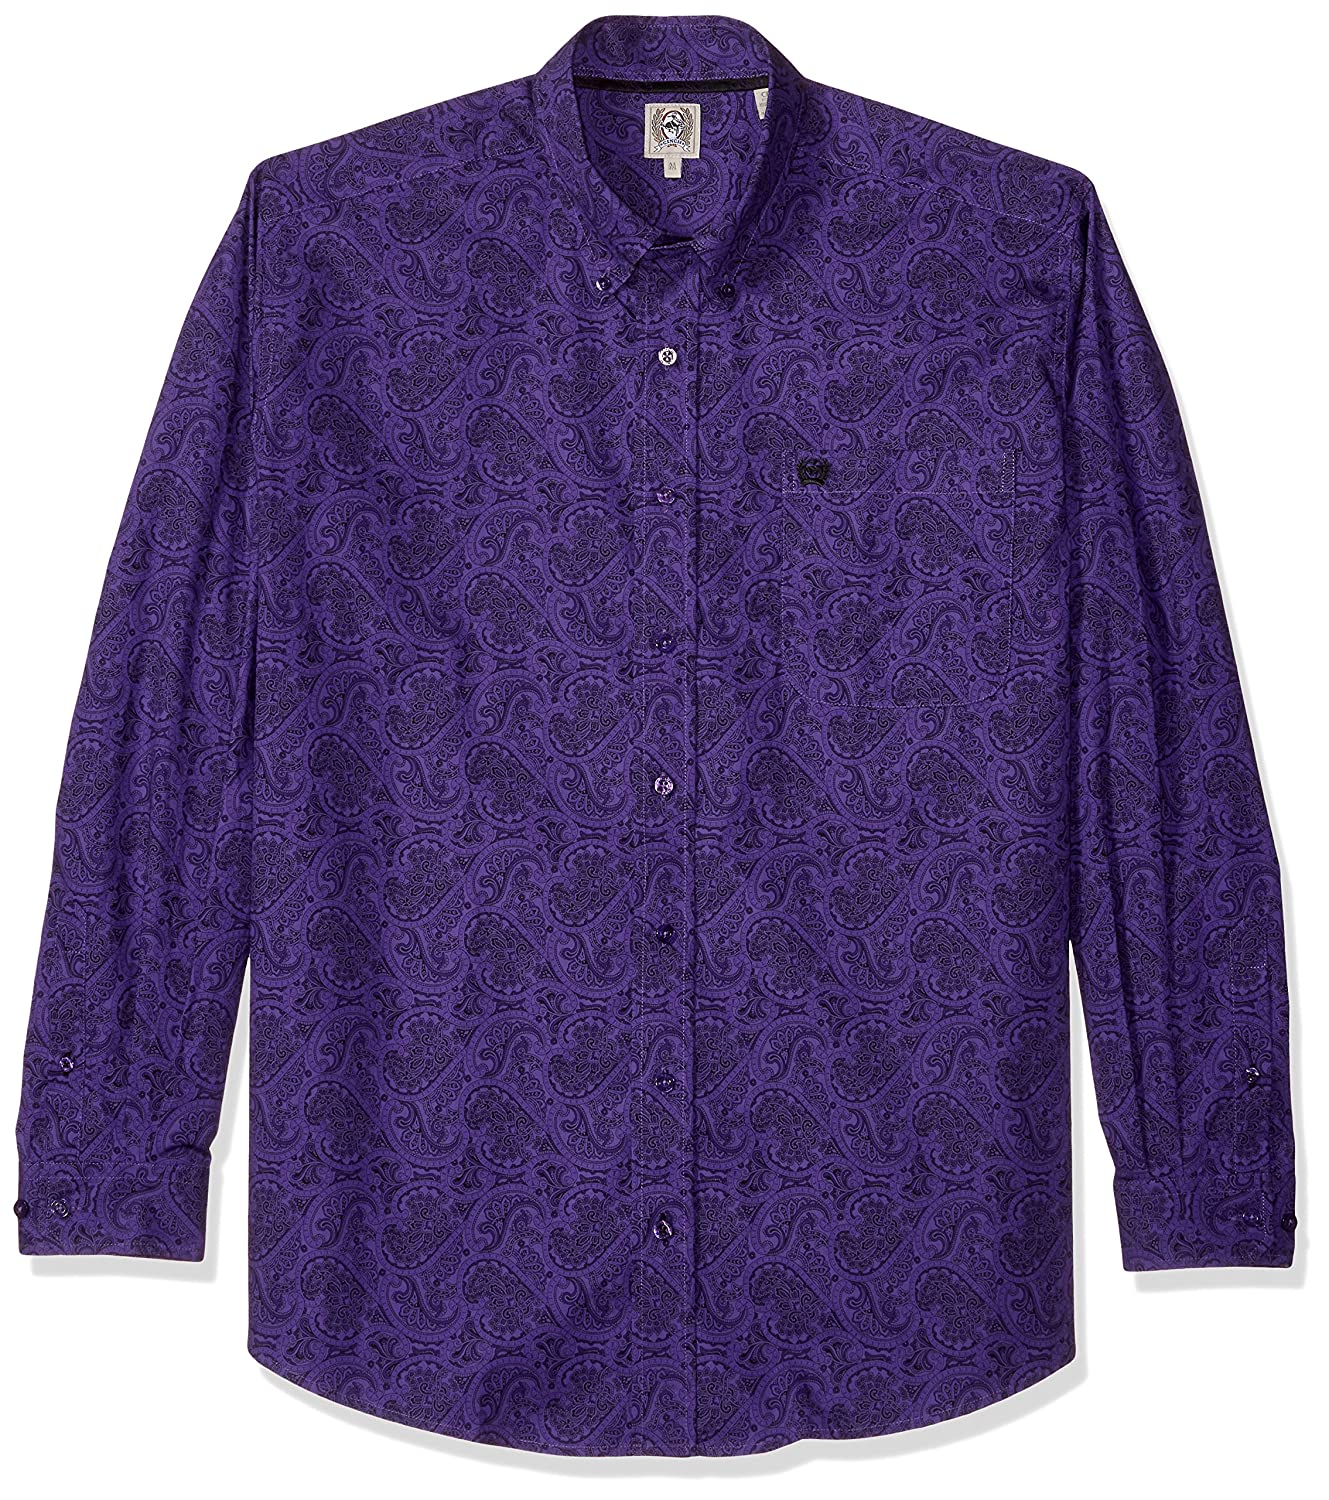 Cinch SHIRT メンズ B074MD6N2N XS|Paisley Purple Paisley Purple XS